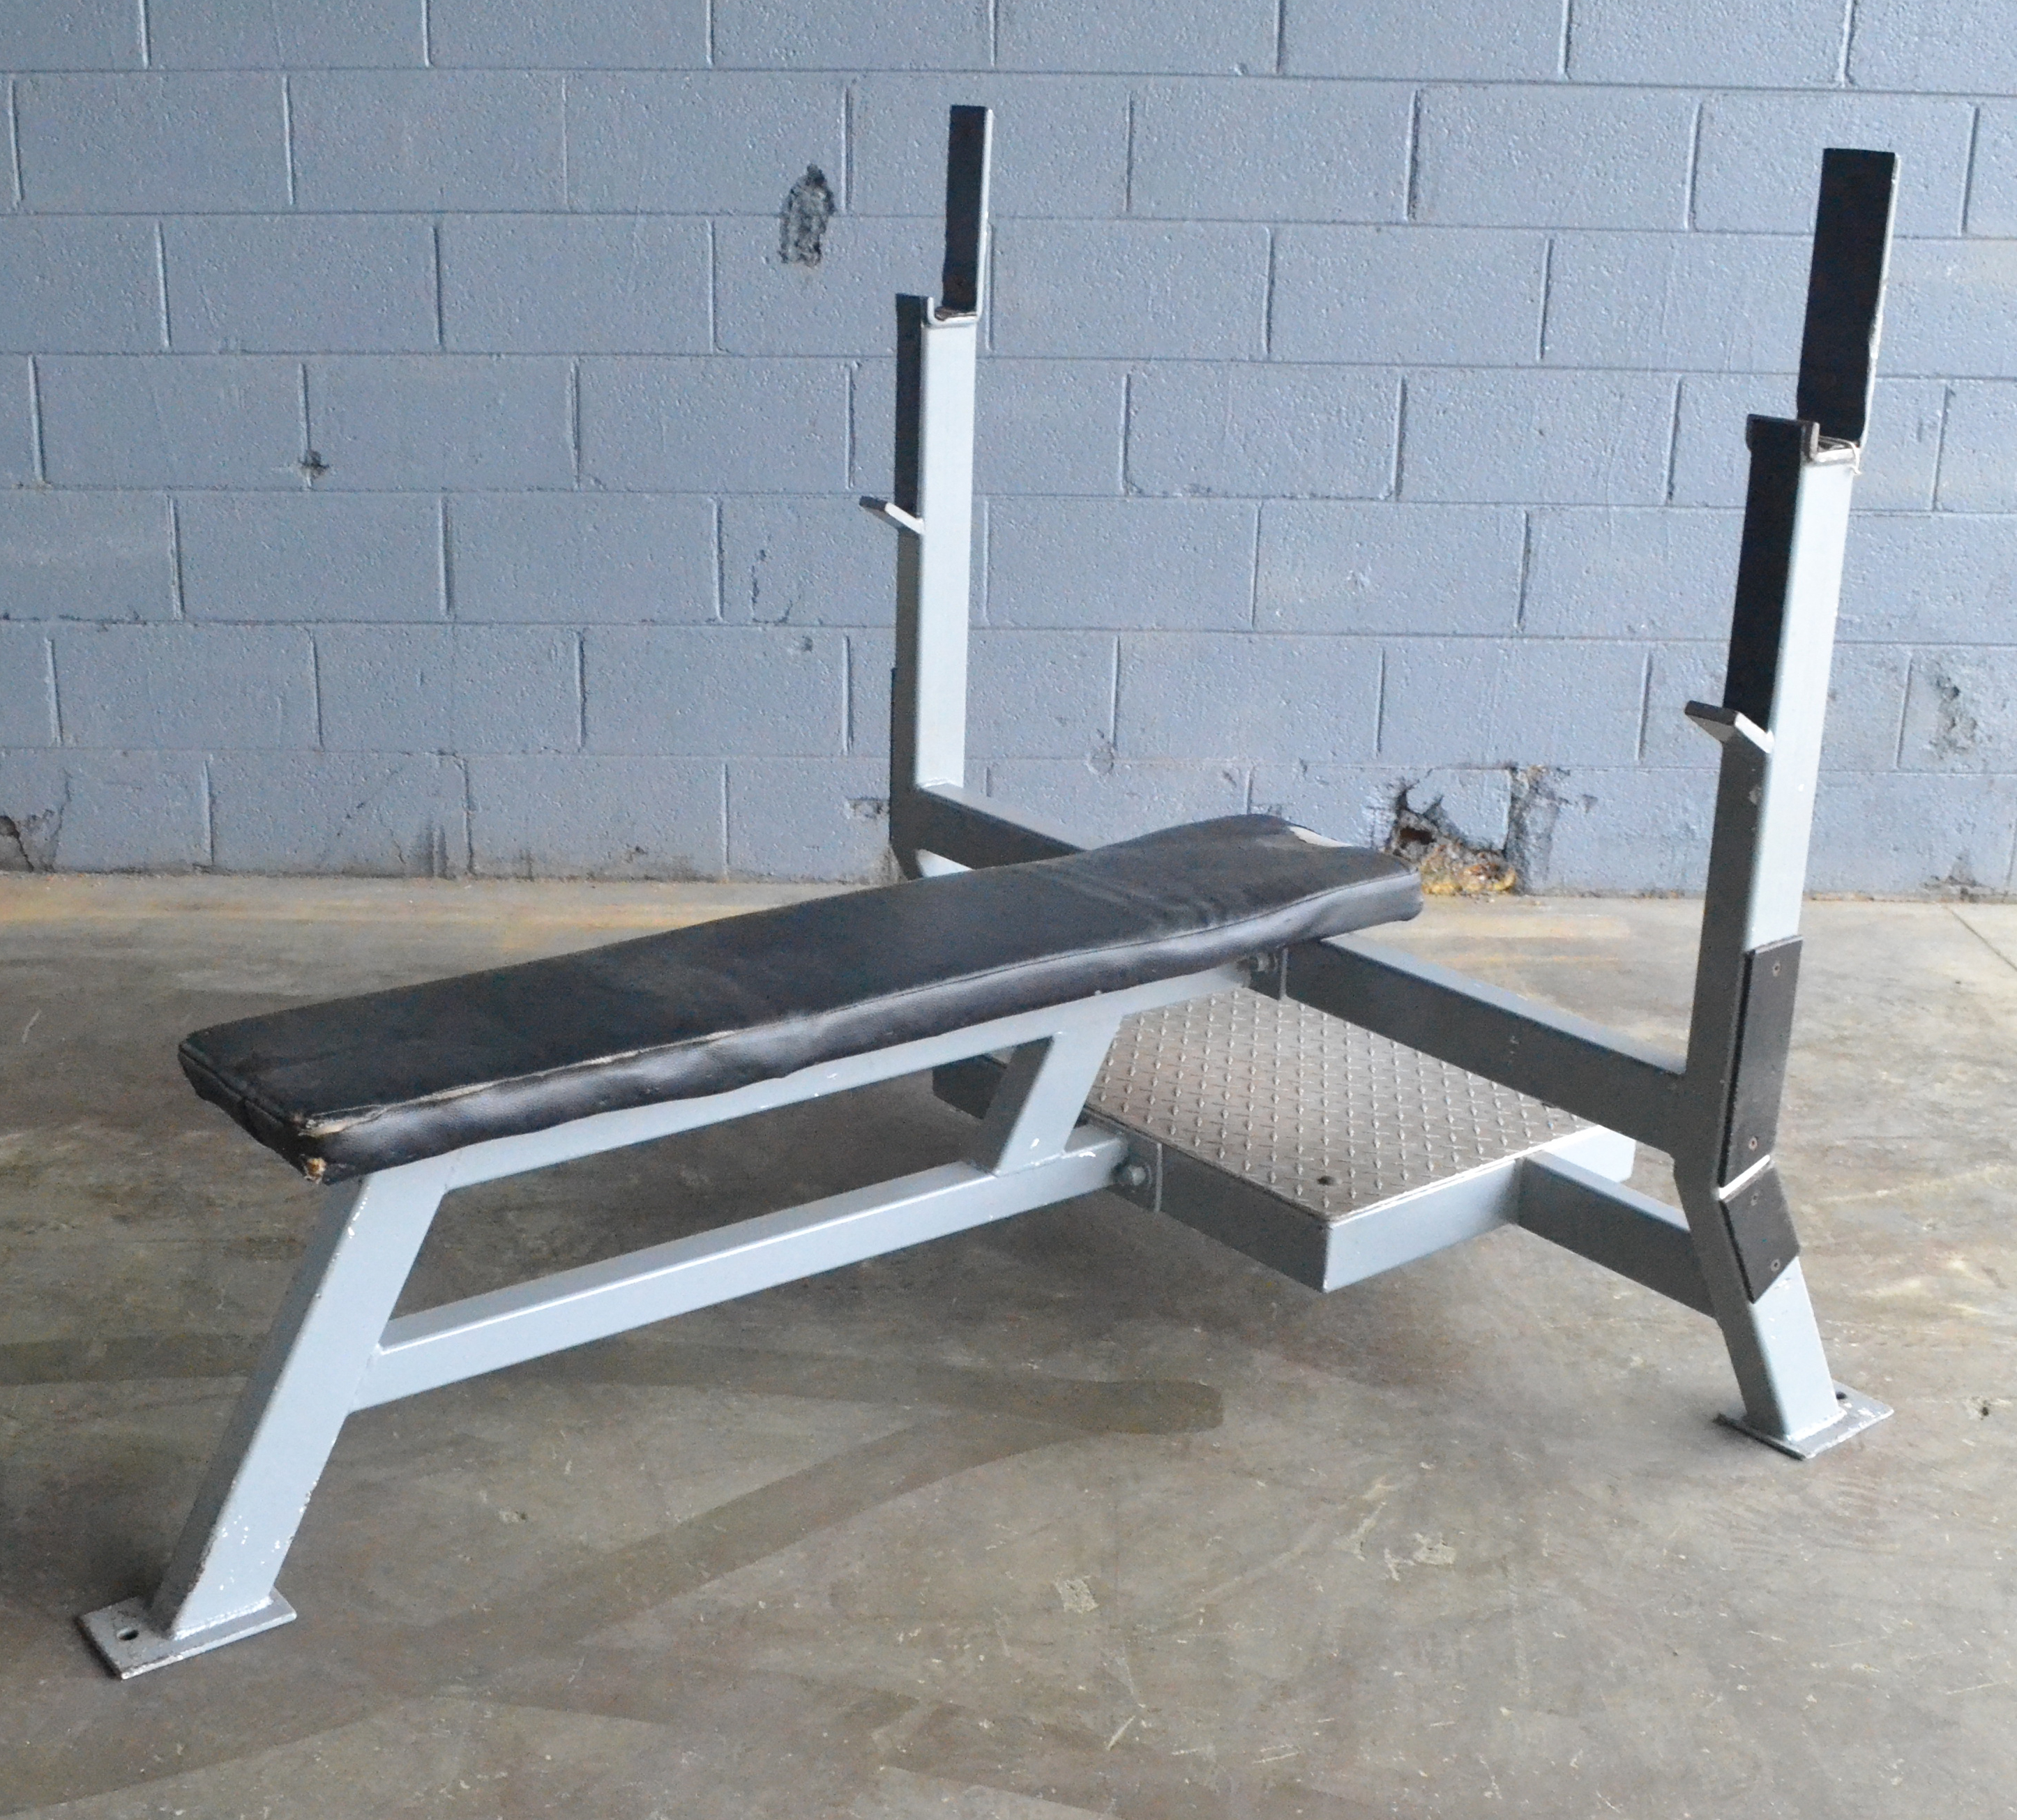 Precor Treadmill Won T Incline: Gym Equipment: Used Commercial Gym Equipment